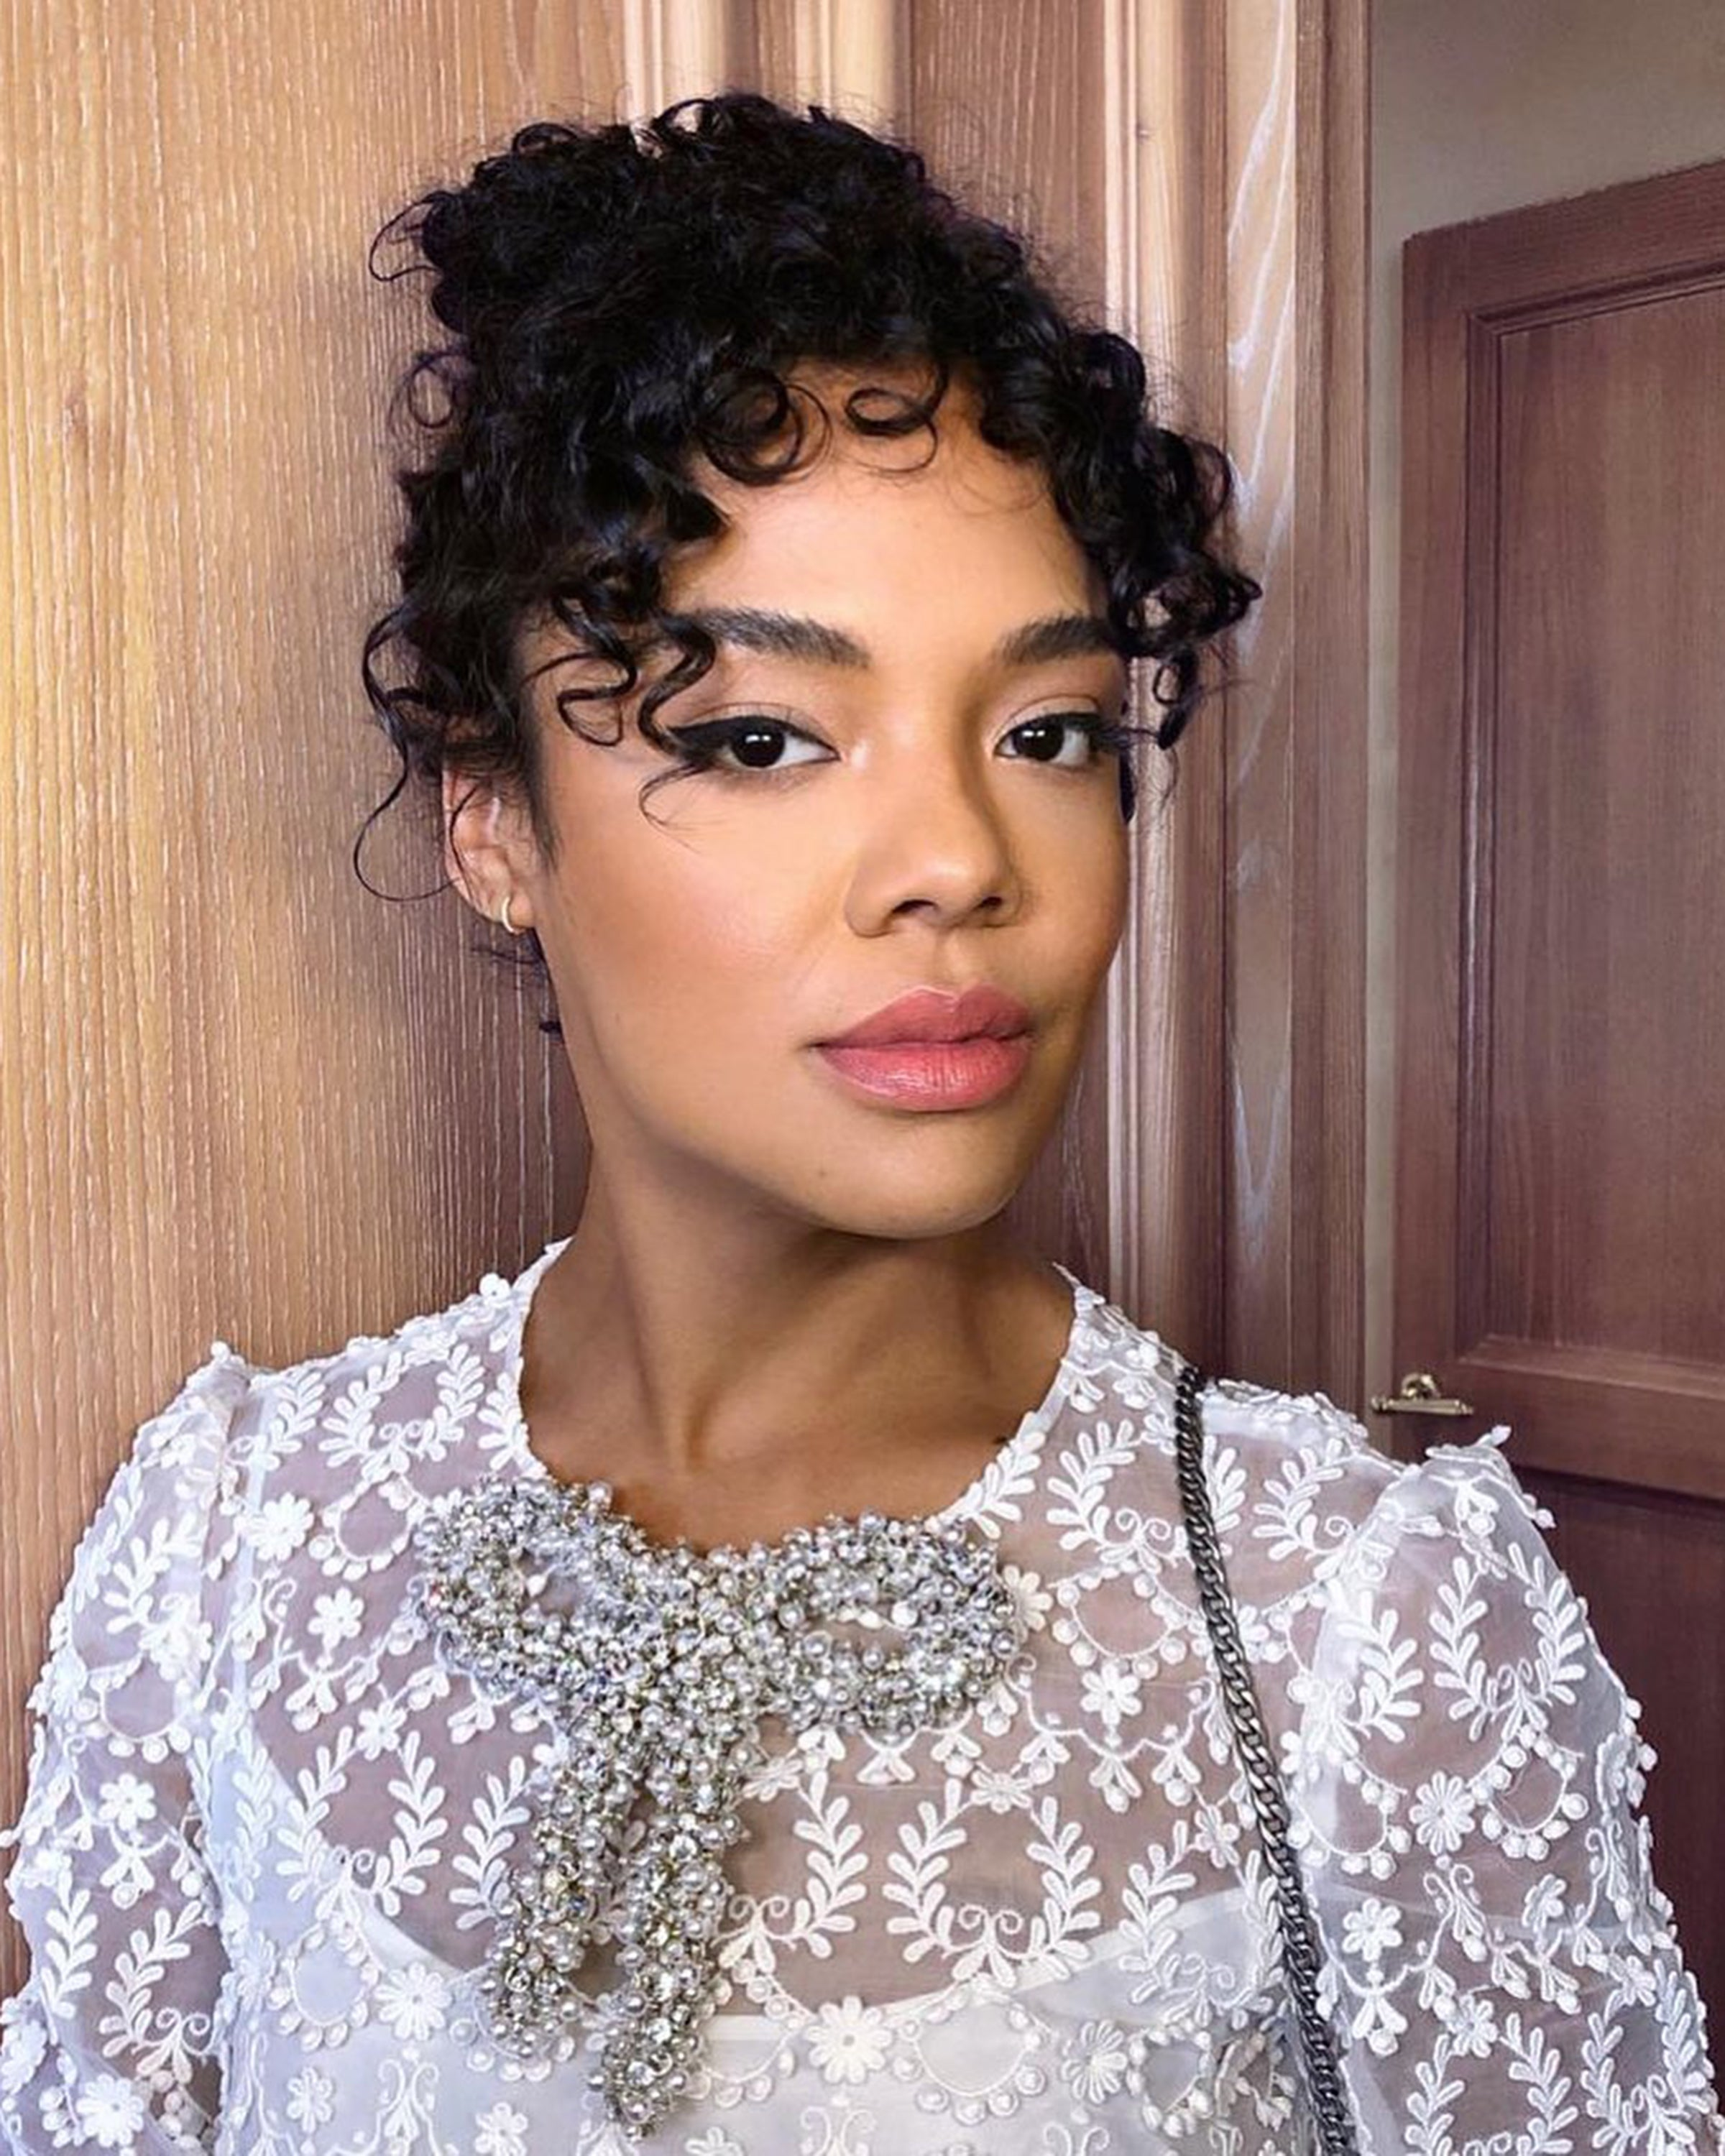 Cute Updo Hairstyles For Black Women Natural Hair 2019